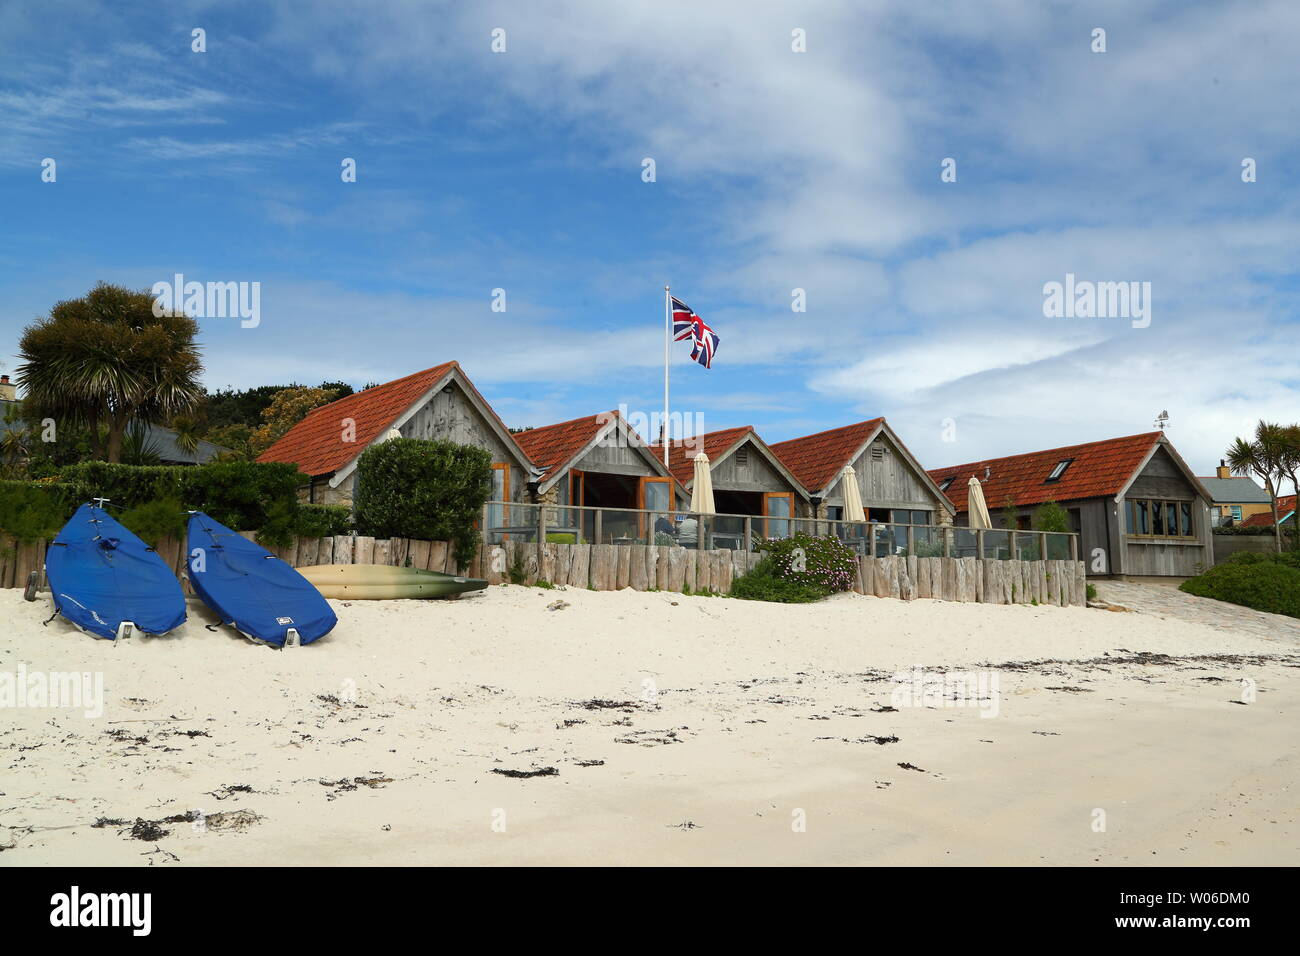 Sea Garden Cottages on Tresco, Isles of Scilly, Cornwall, UK Stock Photo